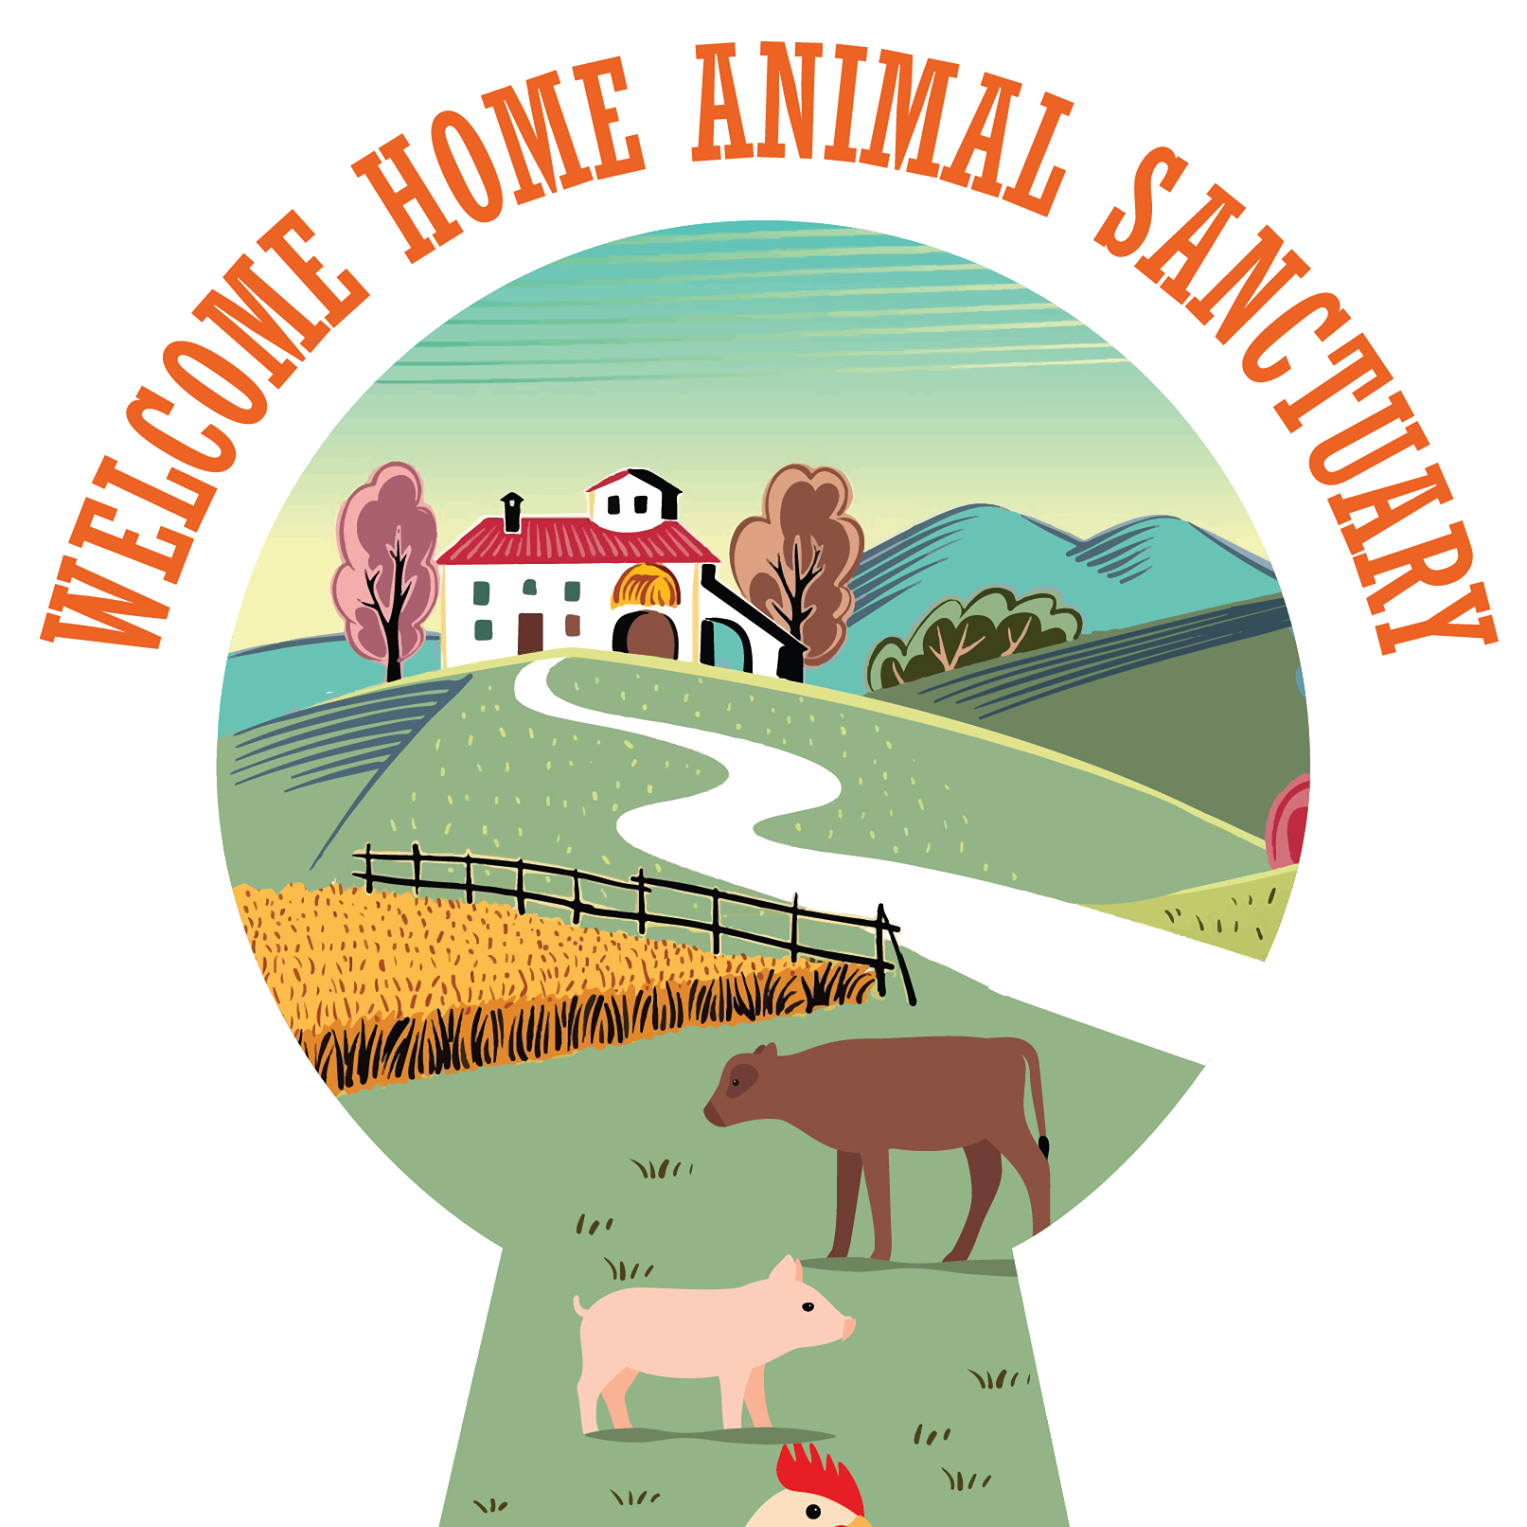 Welcome Home Animal Sanctuary